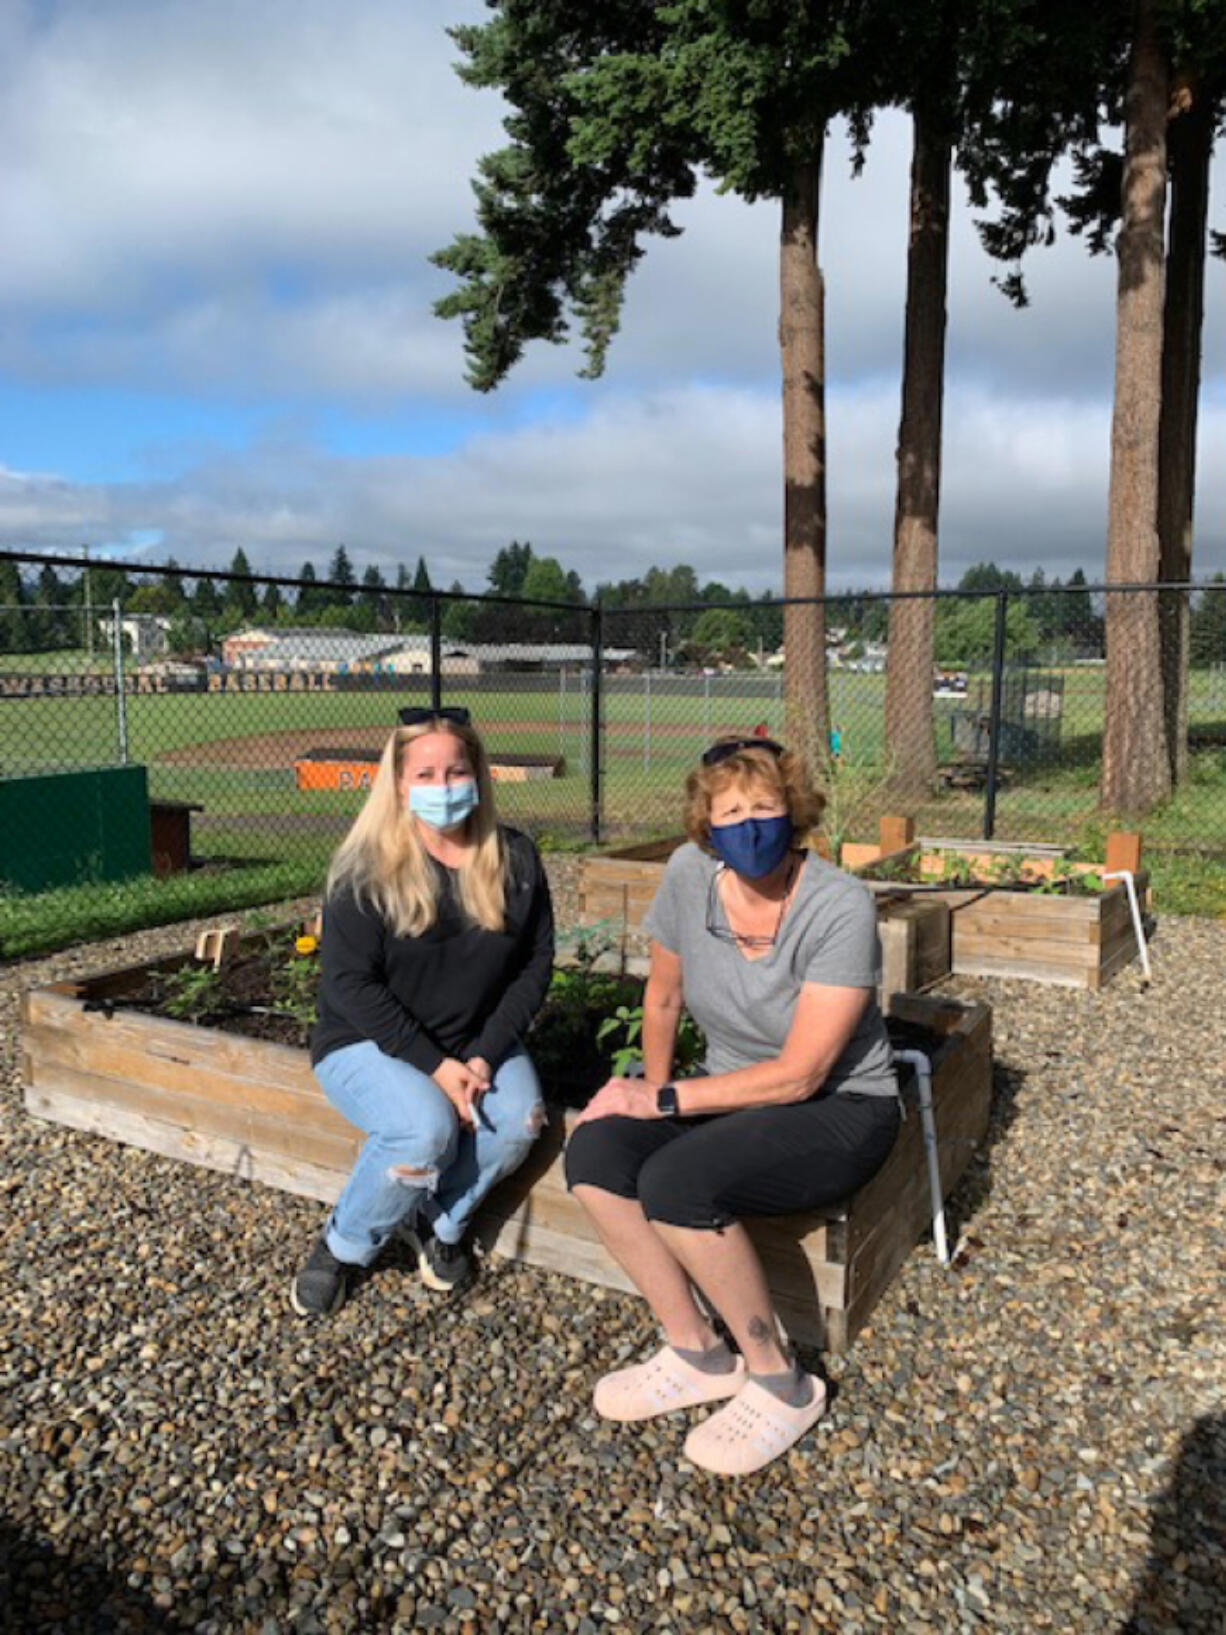 WASHOUGAL: Community member Nicole King and Washougal High School Chef Brenda Hitchins, right, take a seat on some of the school's new raised garden beds.